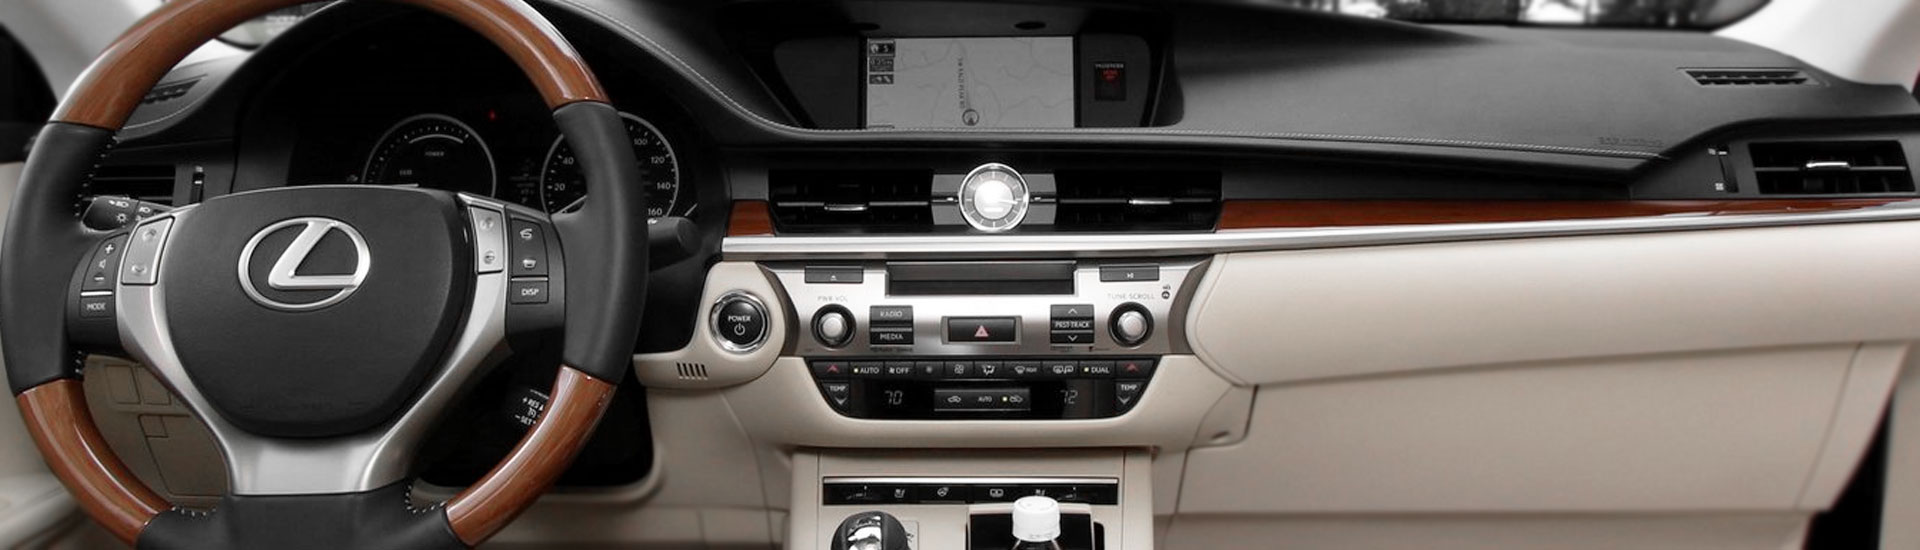 2019 Lexus RX Custom Dash Kits